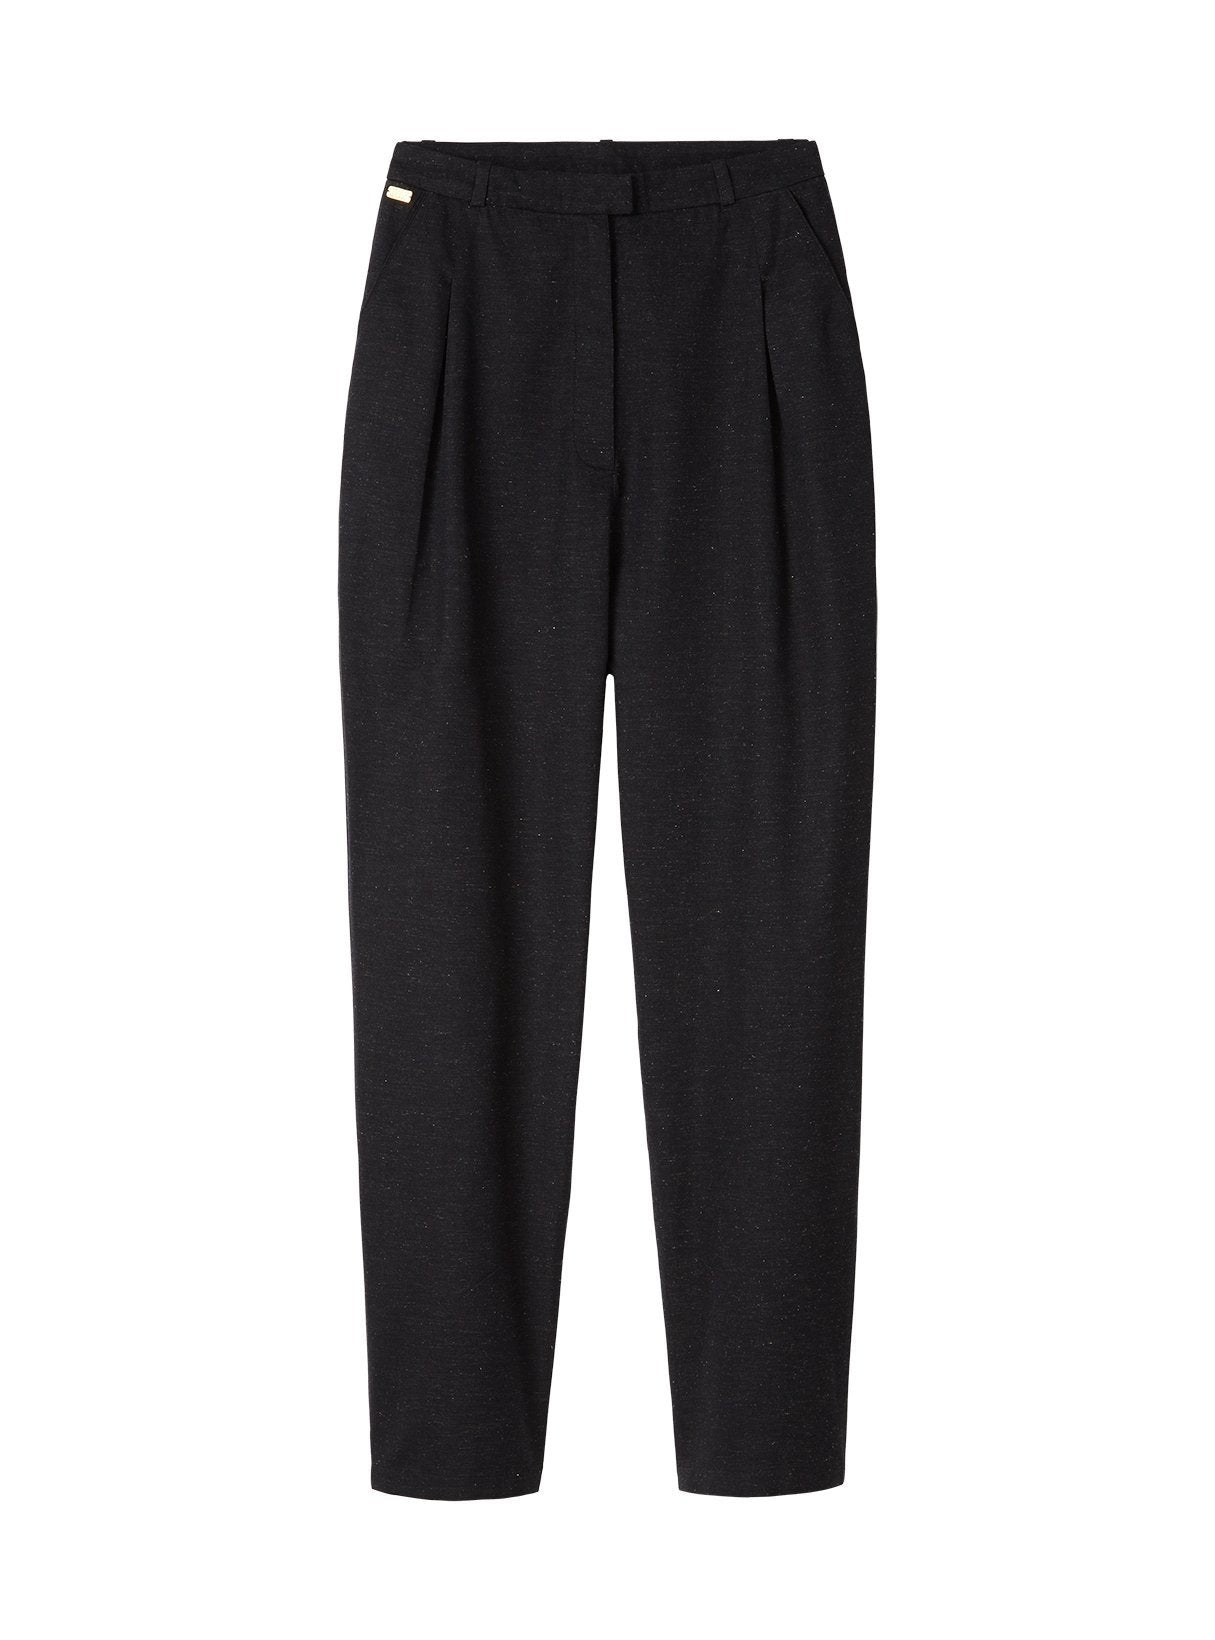 Hight waist twill trousers - dark blue